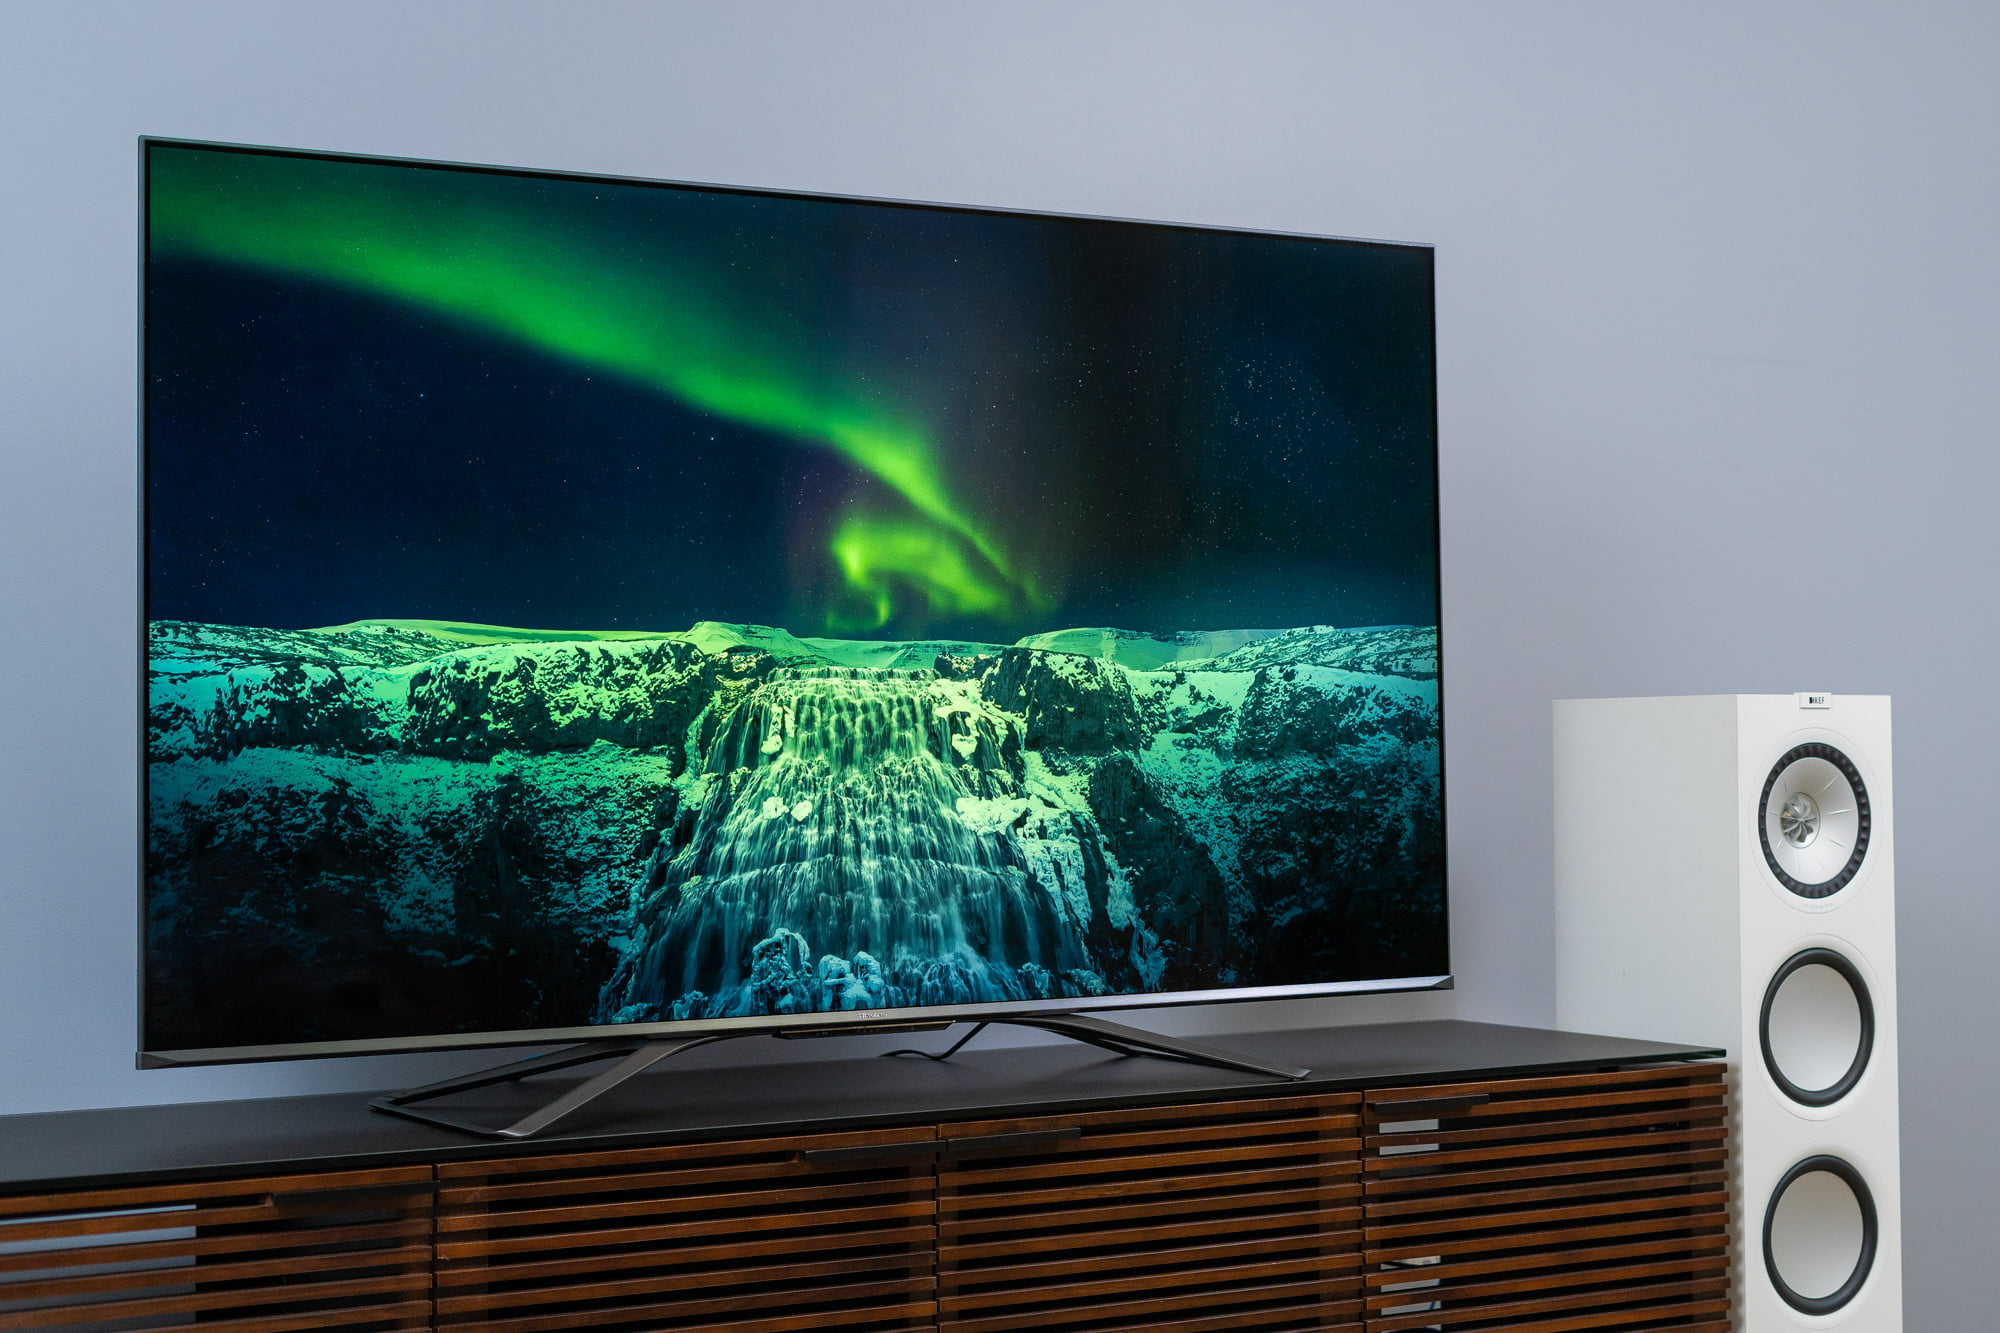 Hisense U8G 4K ULED HDR TV Review